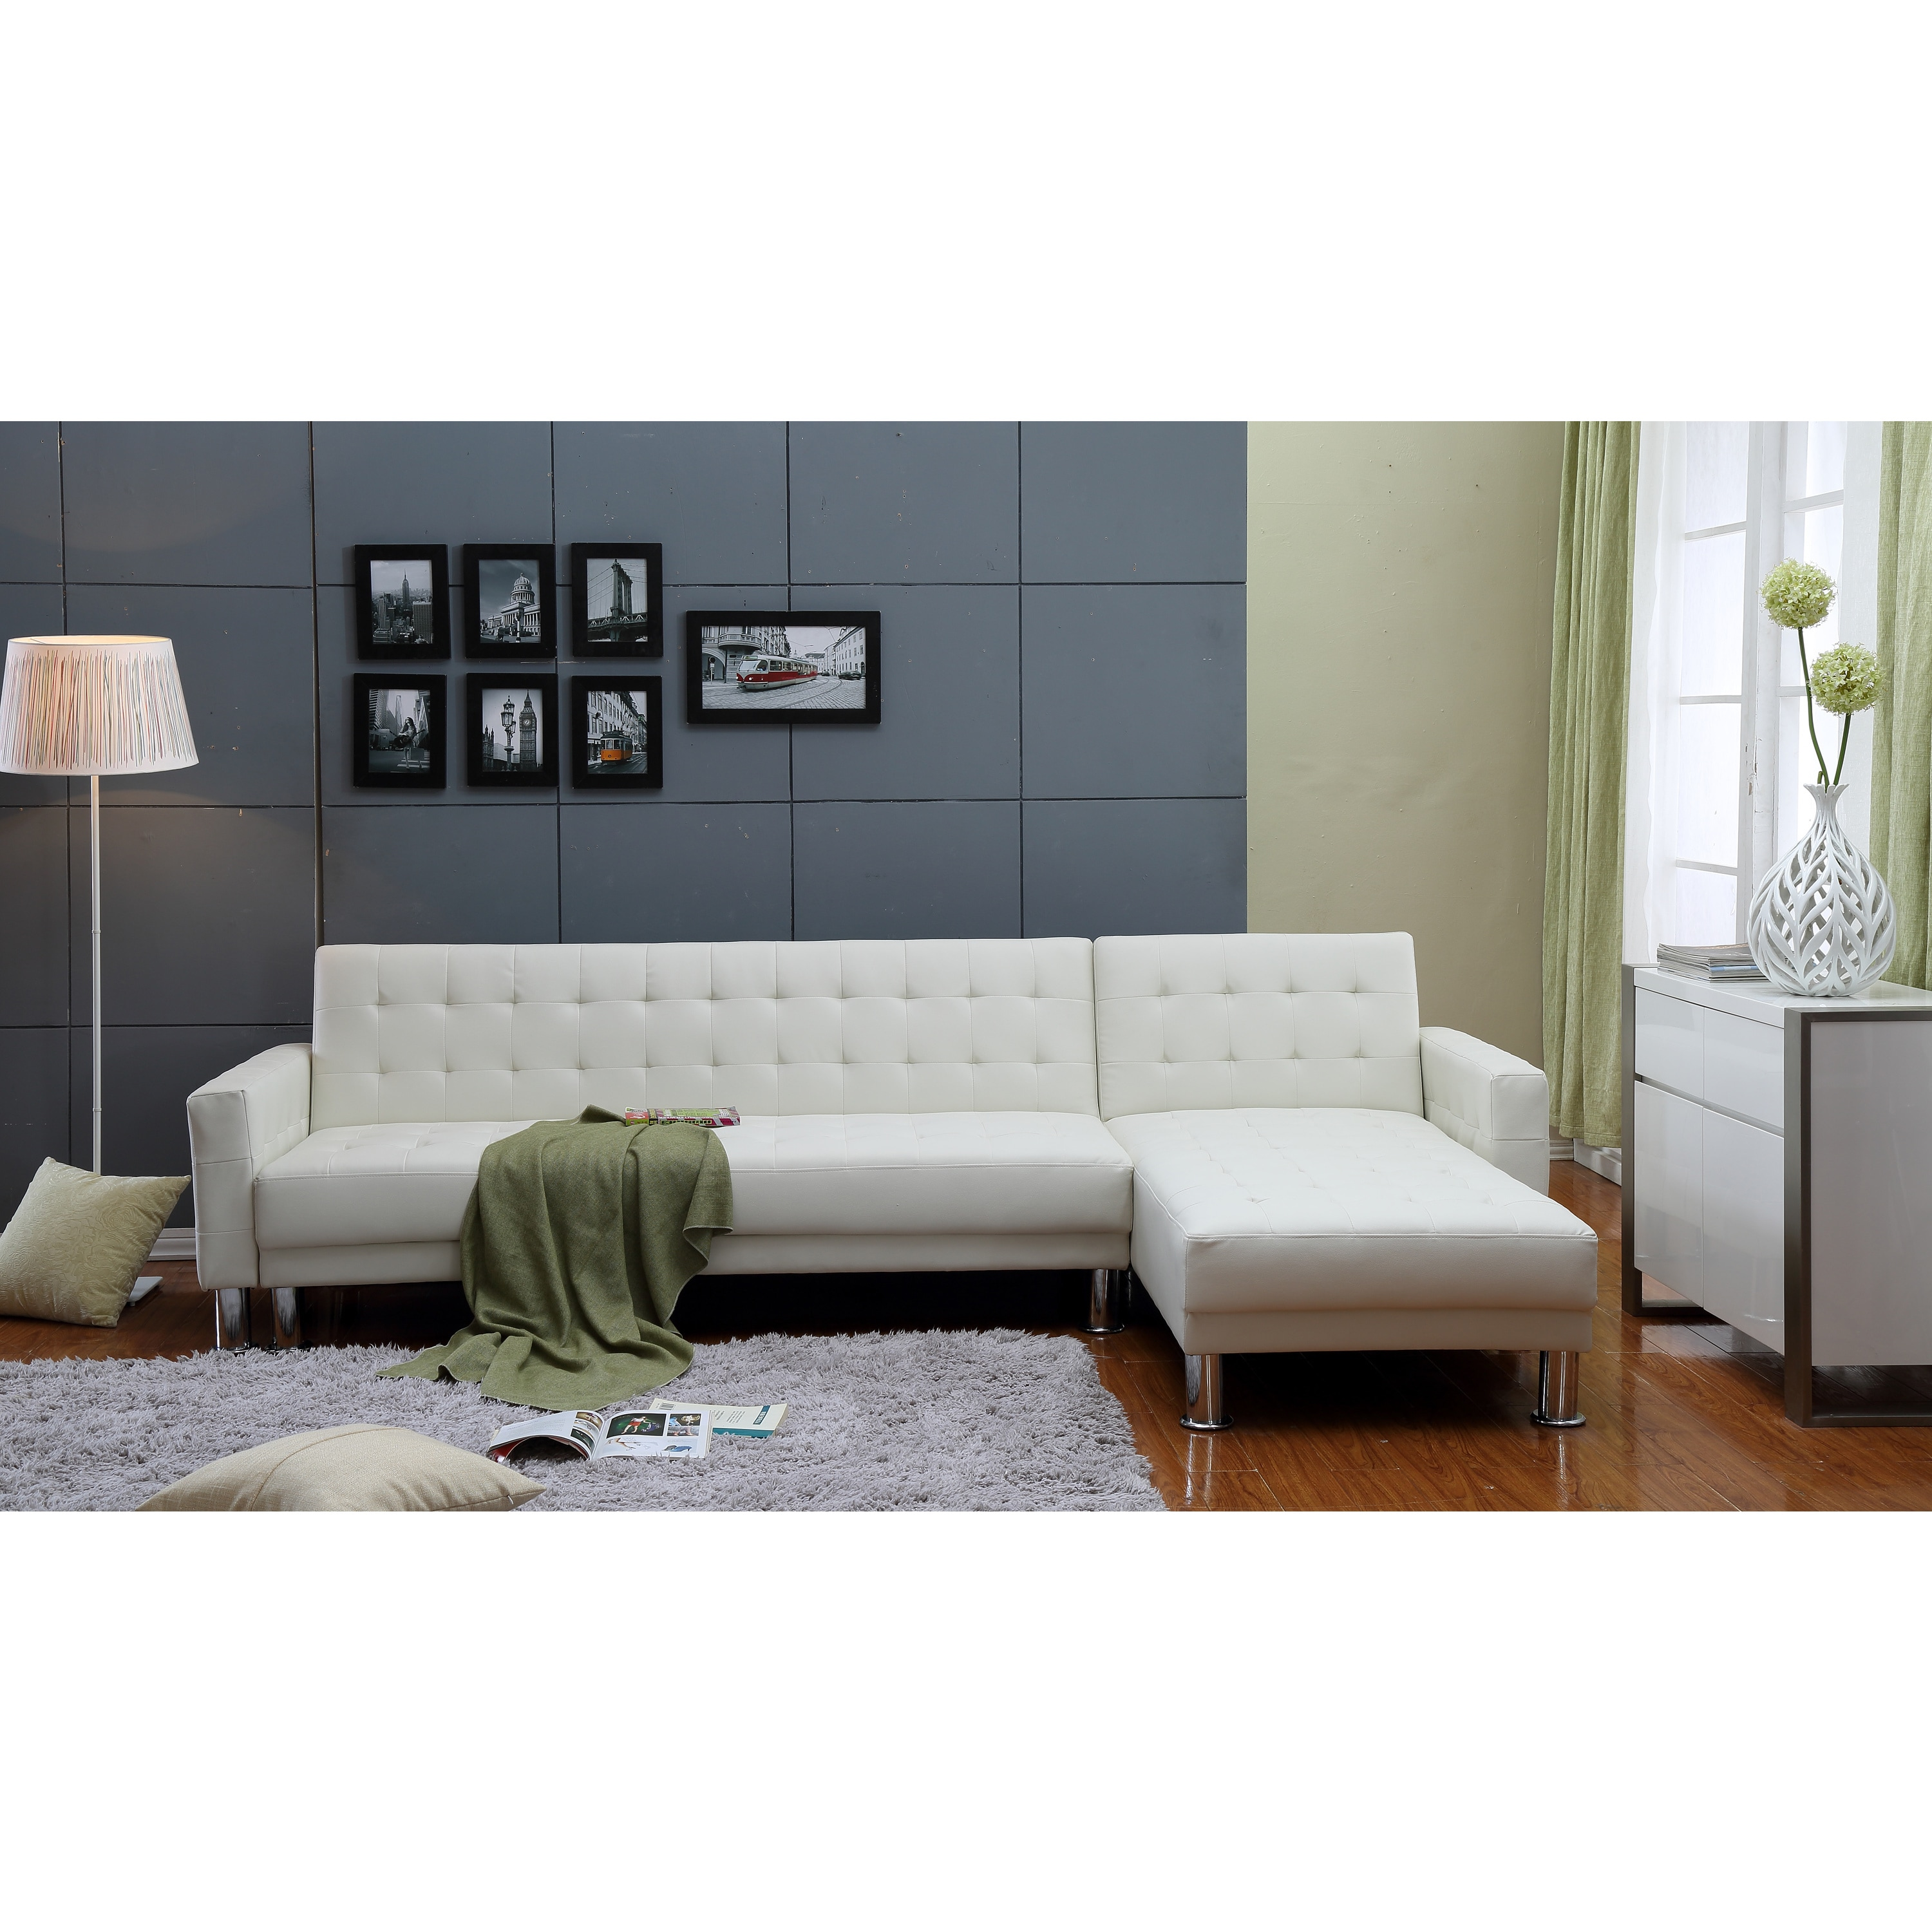 2 Piece White Tufted Bi Cast Leather